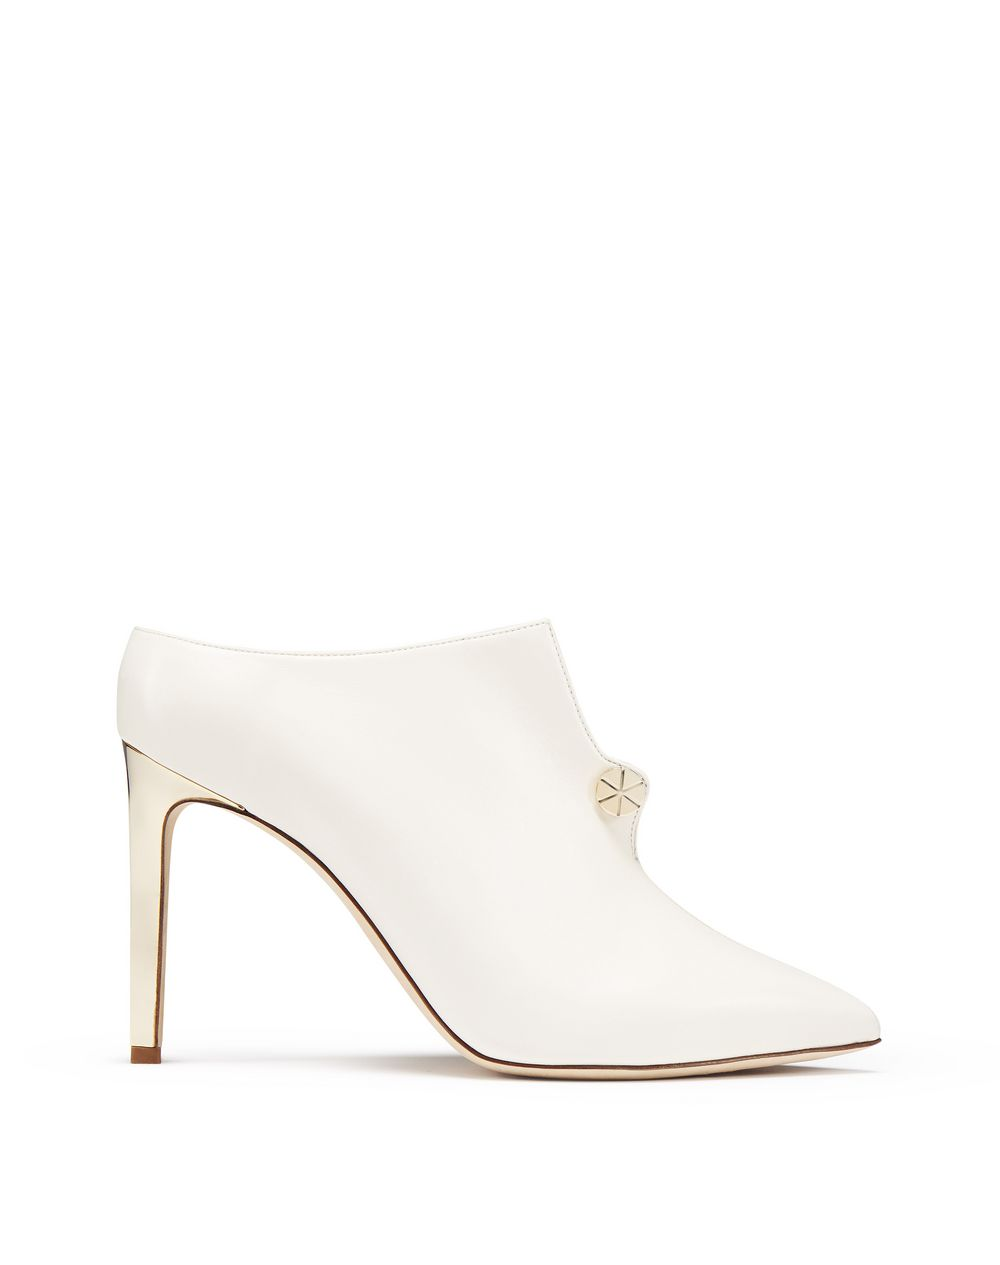 IVORY PIERCING HIGH-HEELED MULE - Lanvin